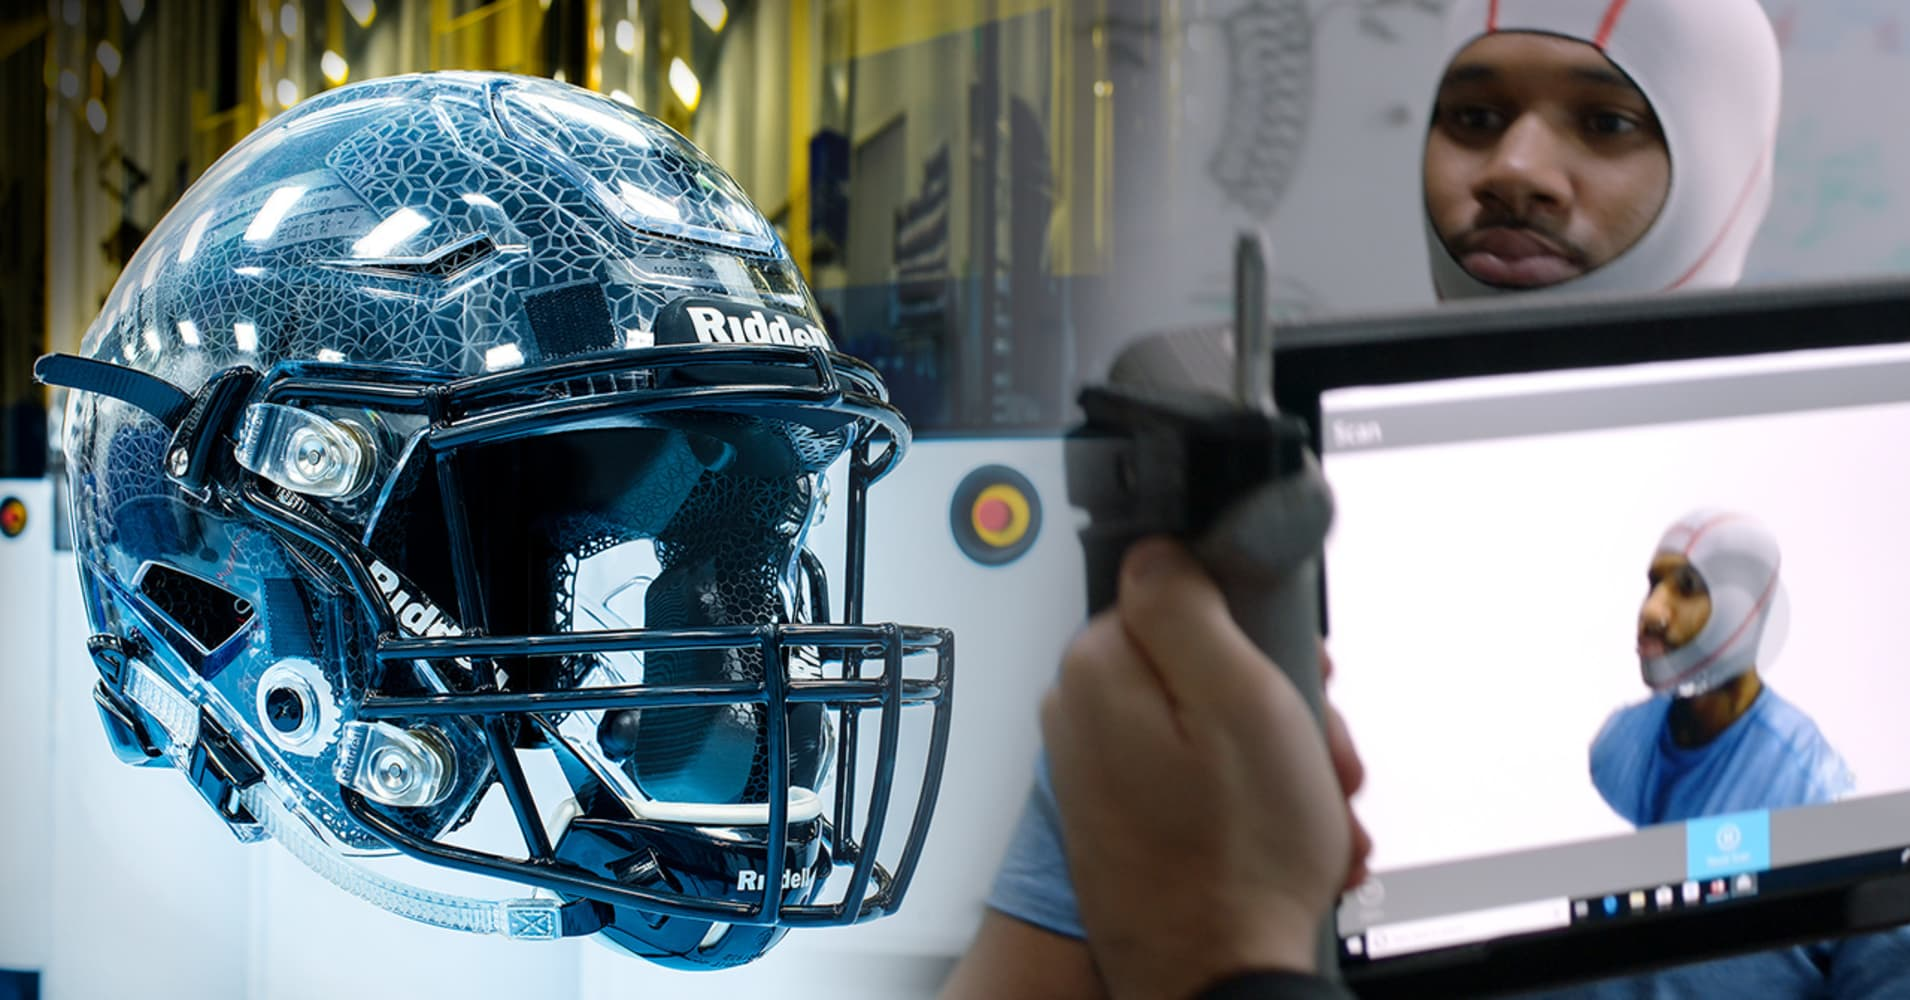 NFL teams are testing this new custom 3D-printed helmet based off scans of players' heads